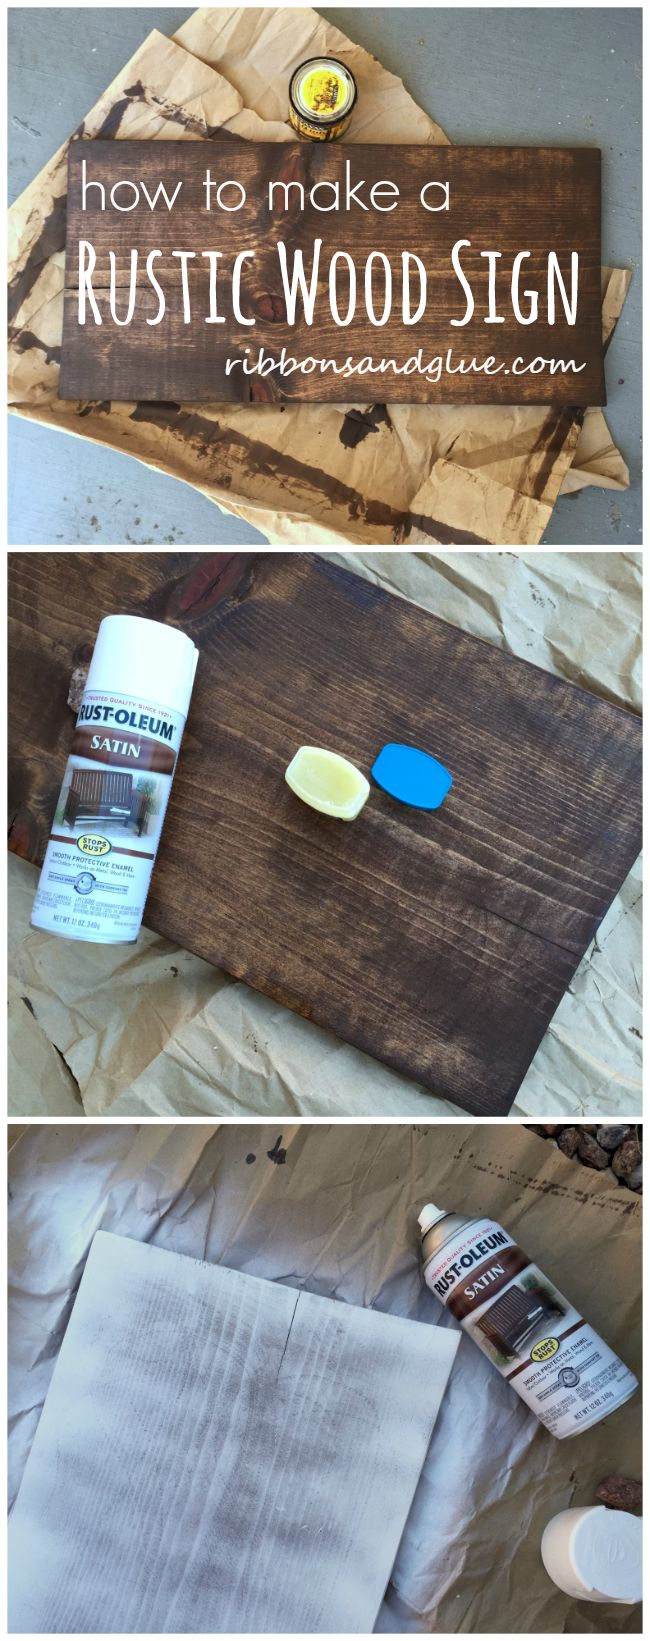 Painted wooden shapes for crafts - Best 25 Painted Wood Crafts Ideas On Pinterest Wood Signs Sayings Diy Wood Crafts And Pallet Painting